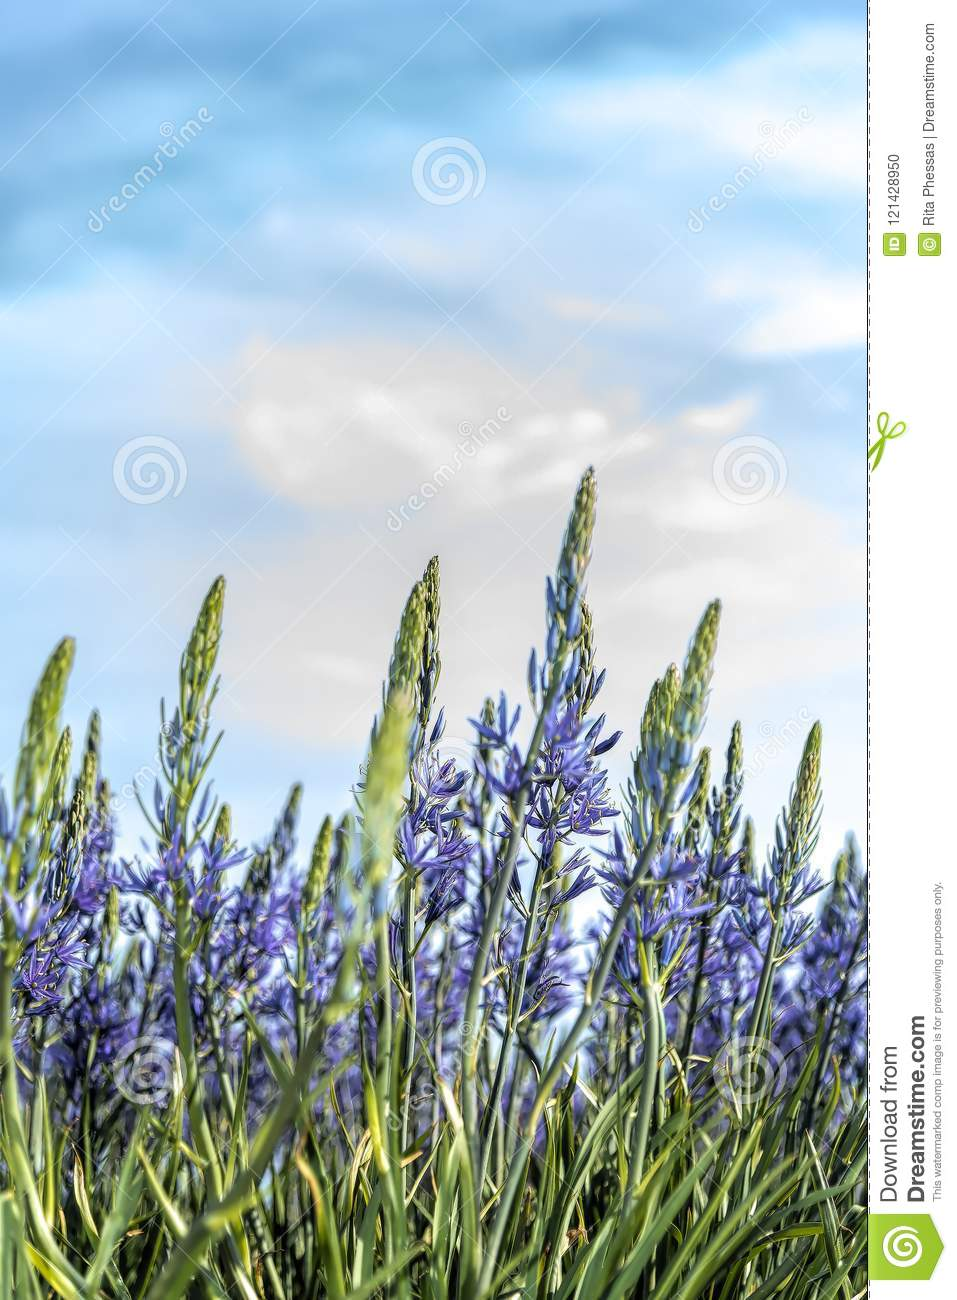 close up of a field of blue flowers against a background of a soft